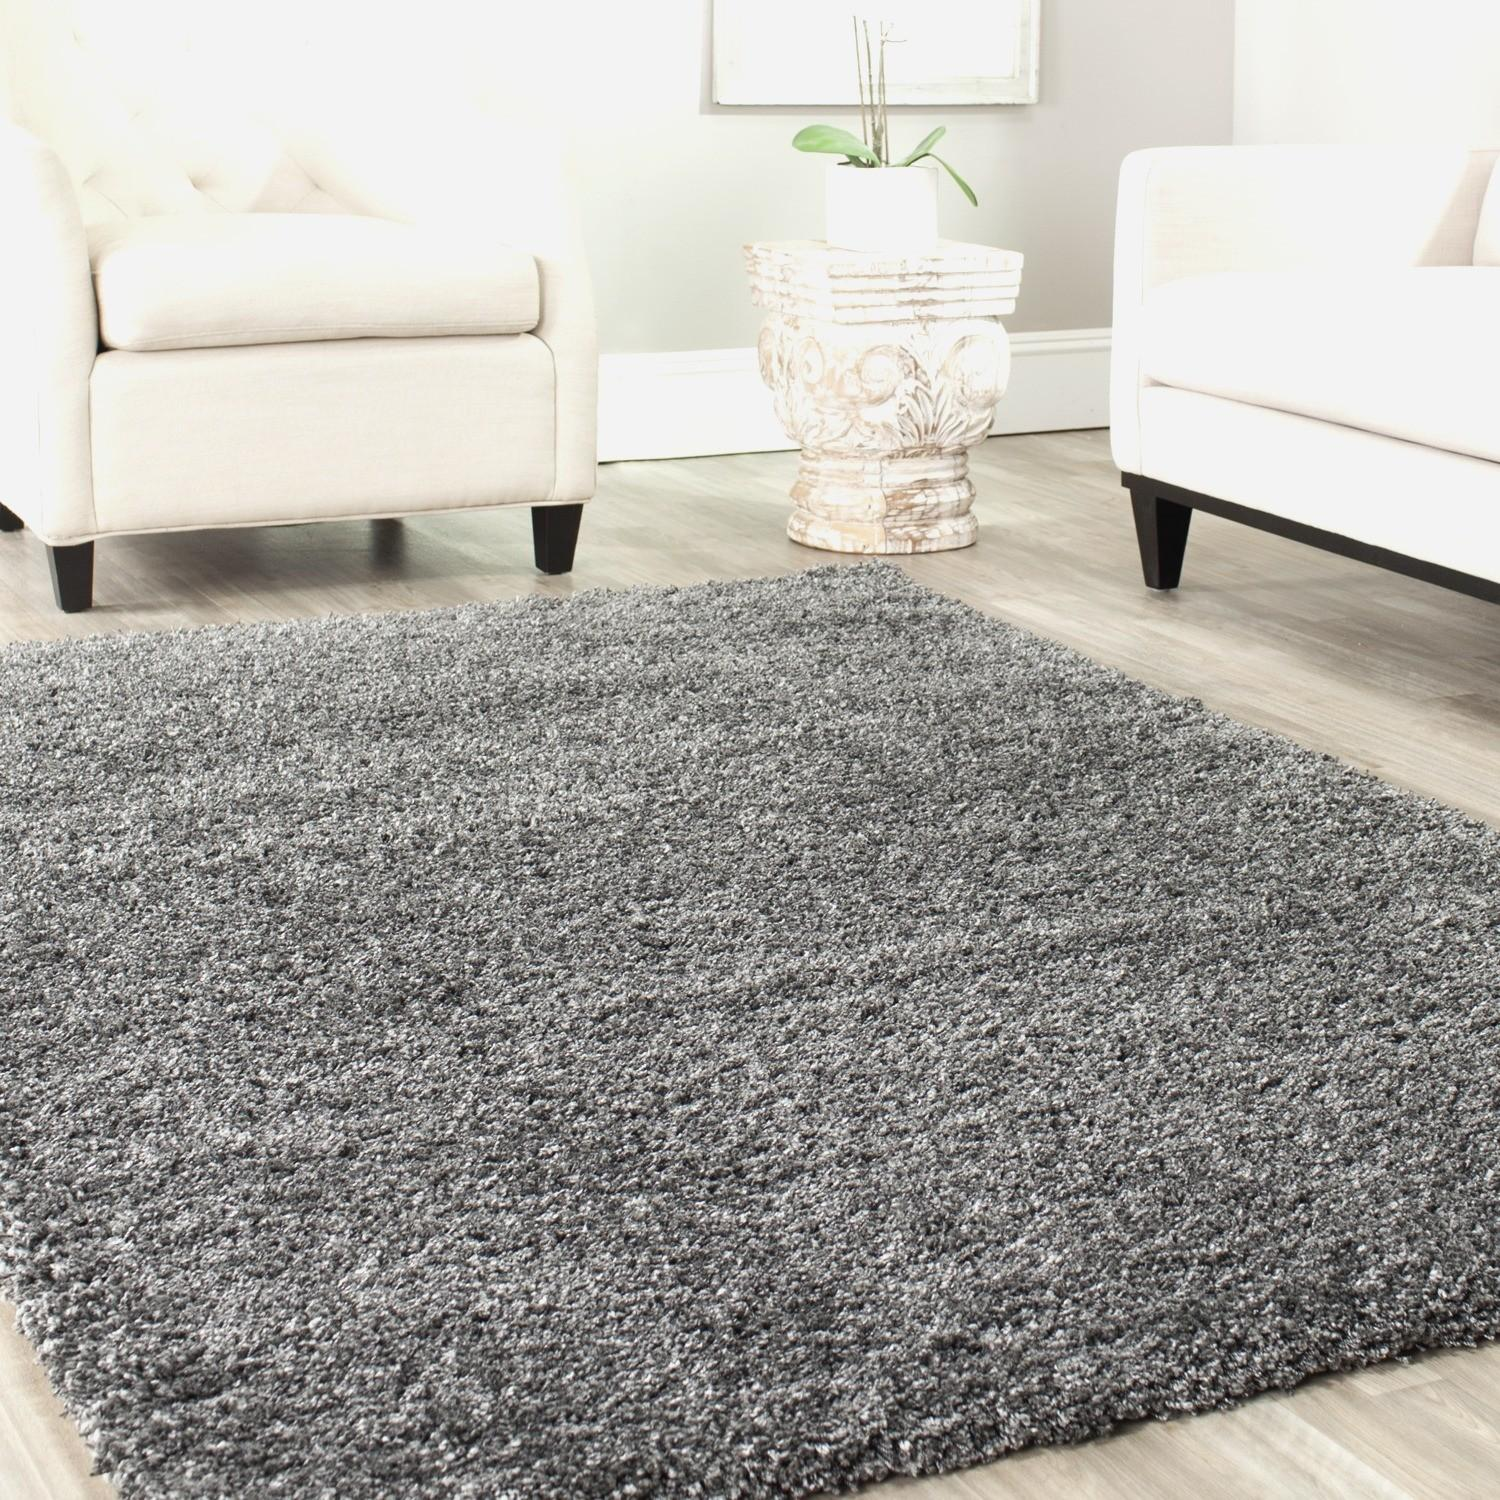 Standard Area Rug Sizes Byarbyur